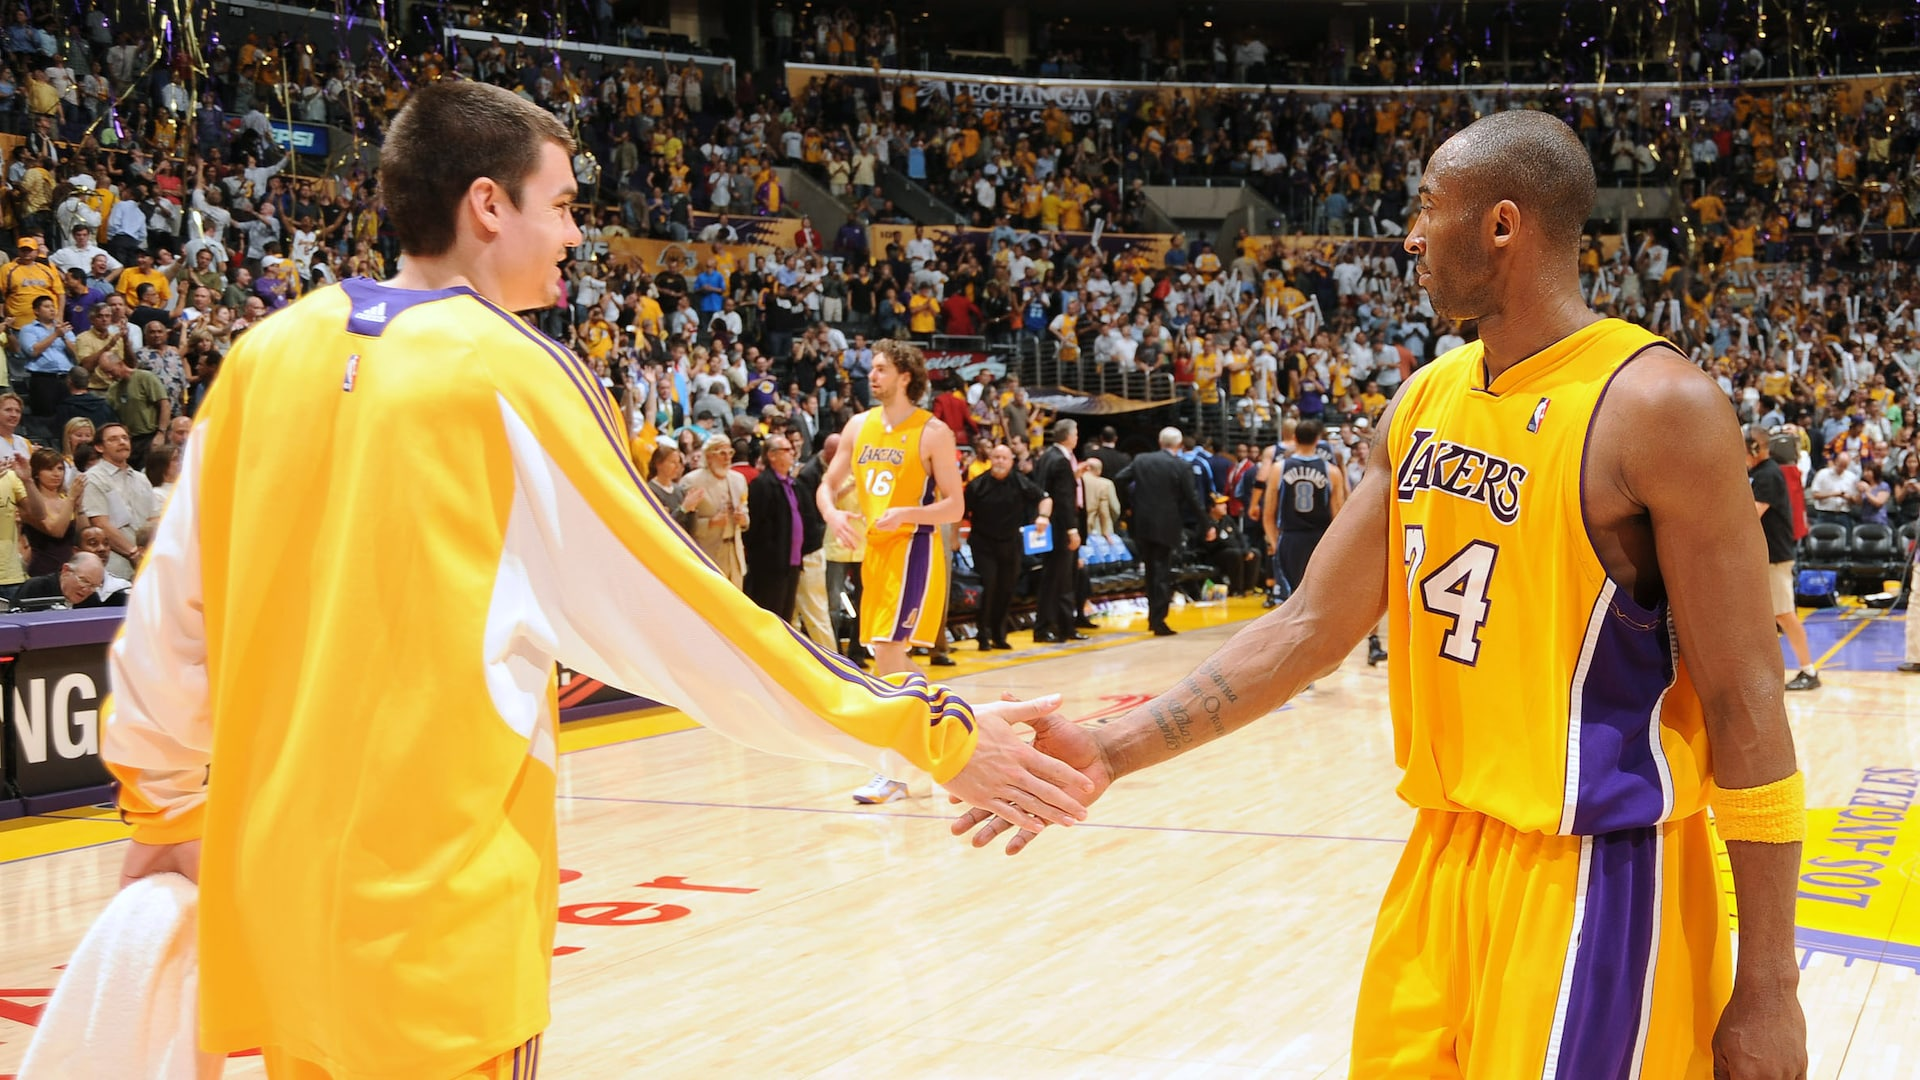 Social media roundup: Adam Morrison fondly recalls Kobe Bryant's kind gesture